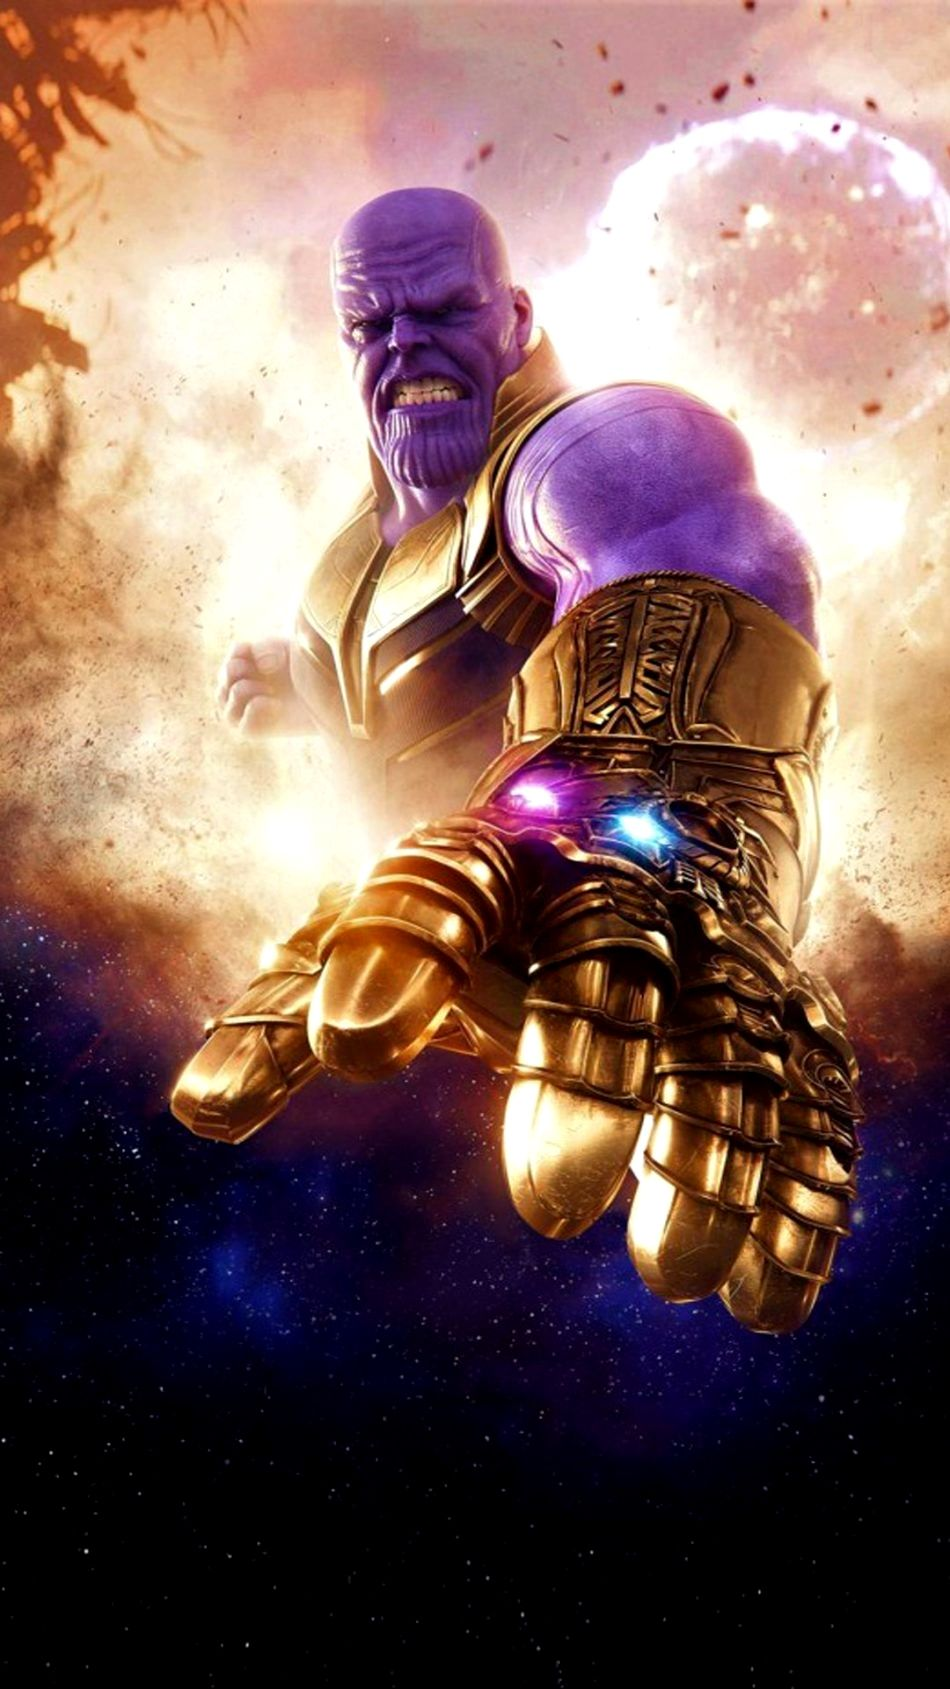 Thanos Wallpaper 4k Mobile Gallery Avengers Wallpaper Marvel Superheroes Marvel Villains